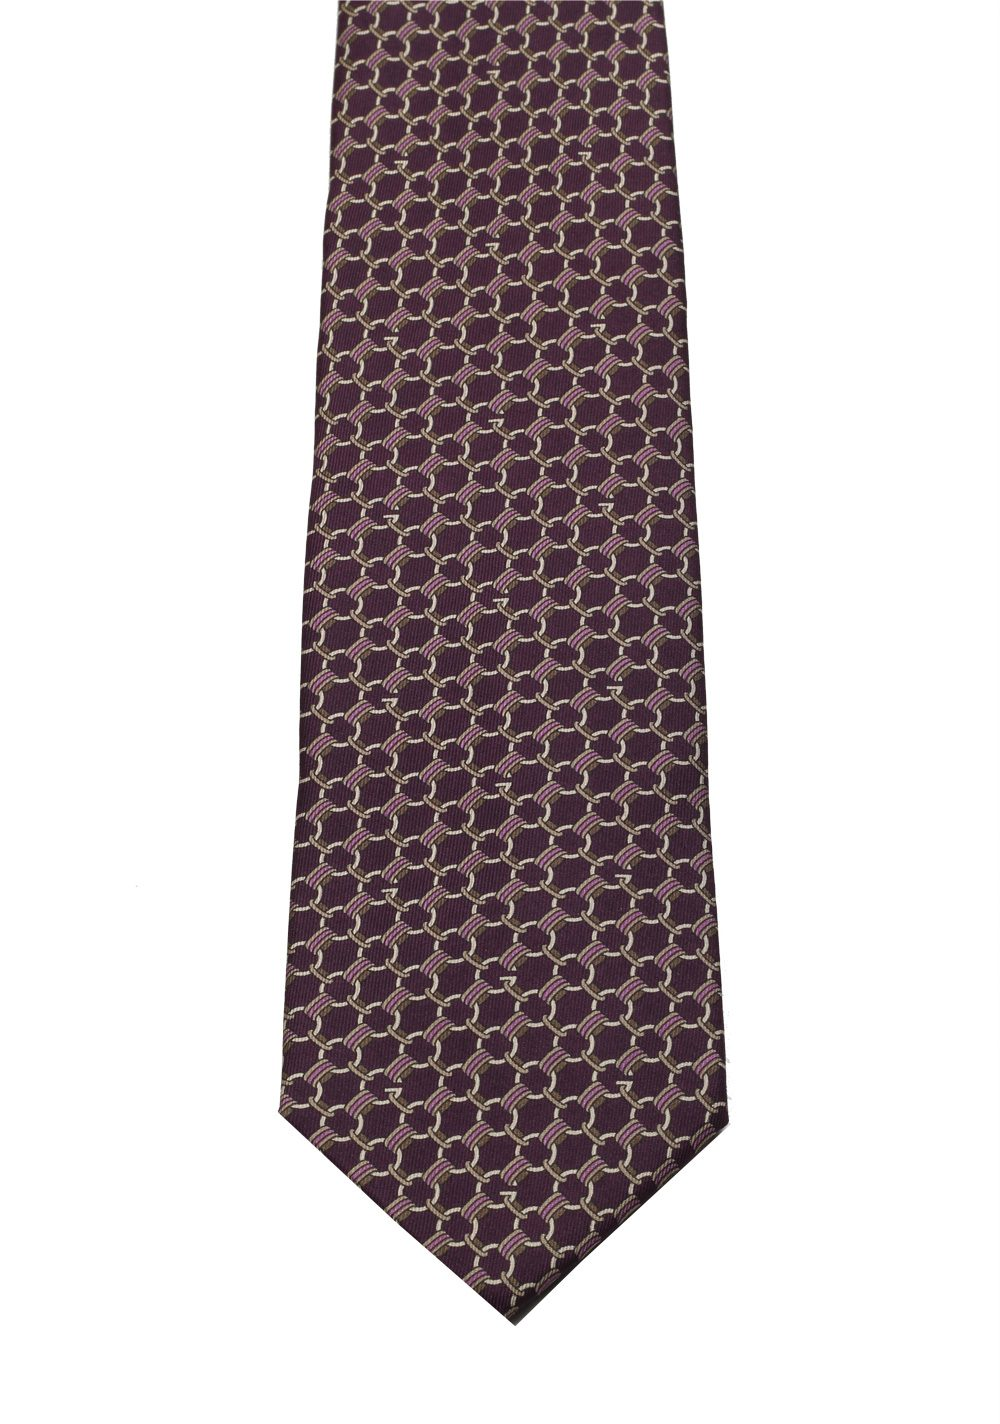 Gucci Purple Patterned Tie | Costume Limité